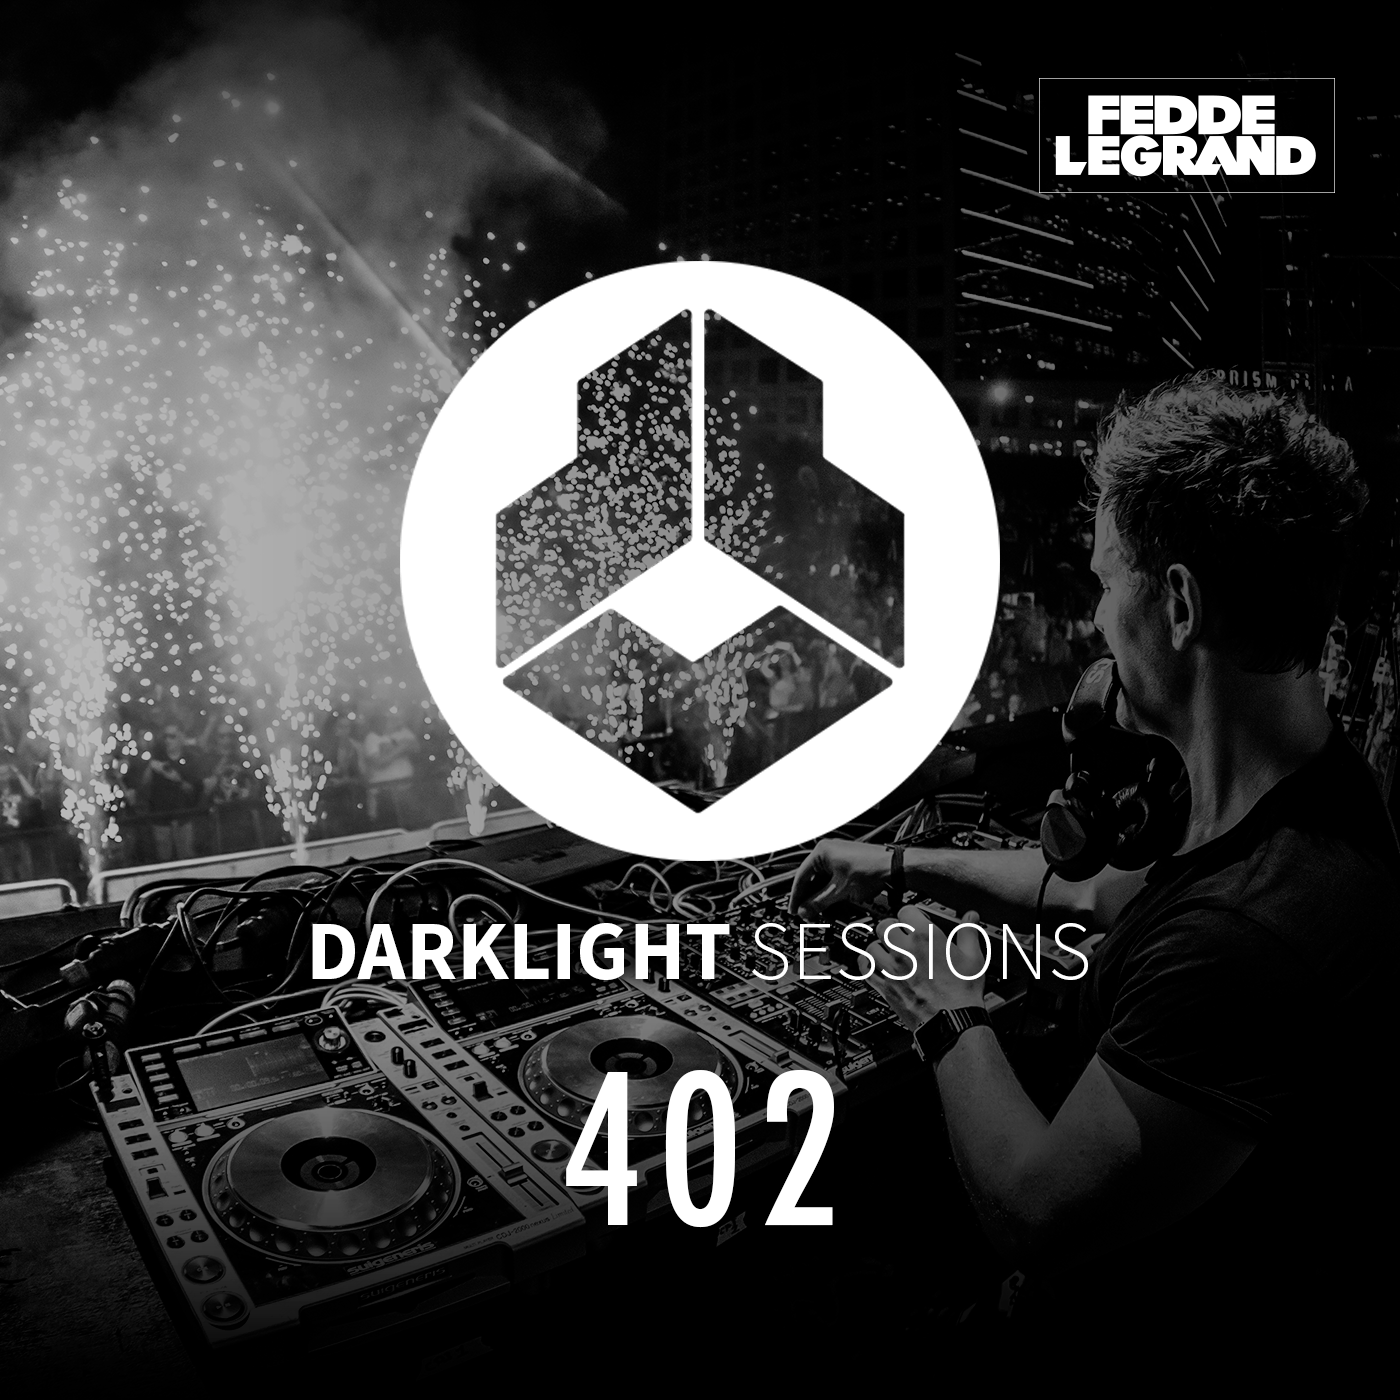 Darklight Sessions 402